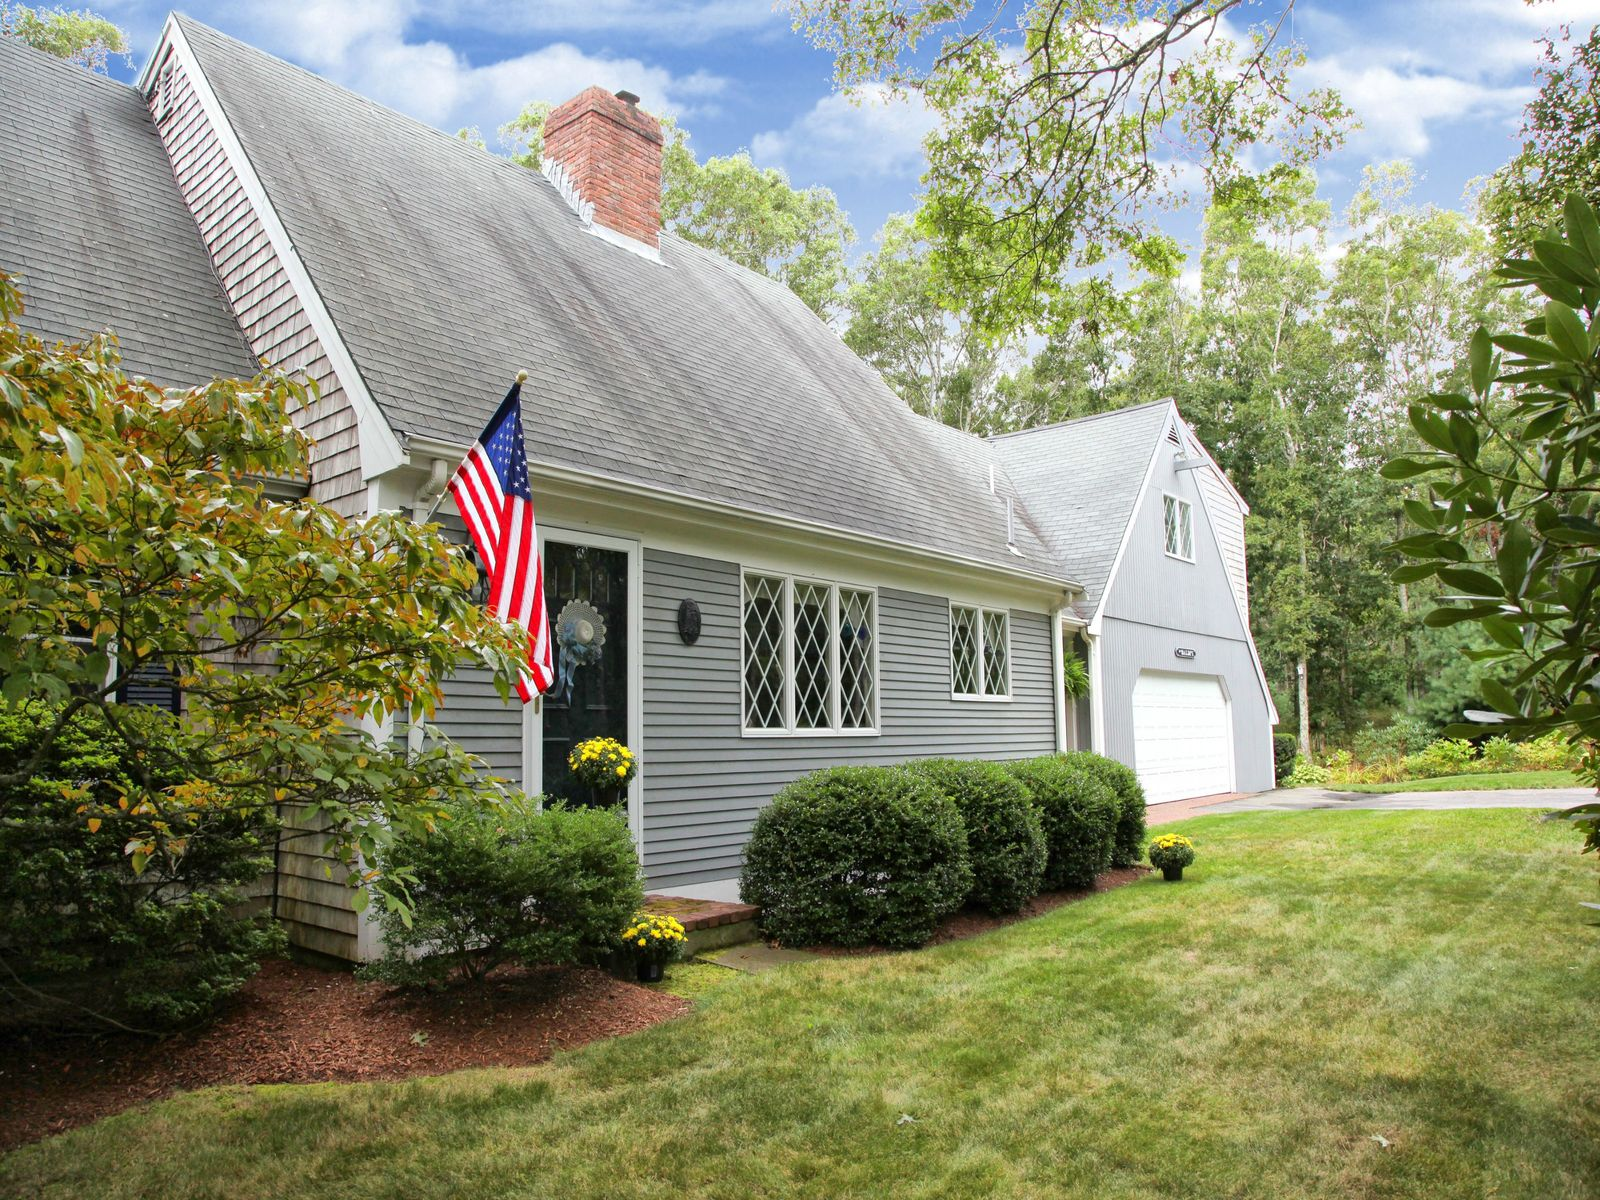 Cape Offers Privacy and Guest Quarters, East Sandwich MA Single Family Home - Cape Cod Real Estate